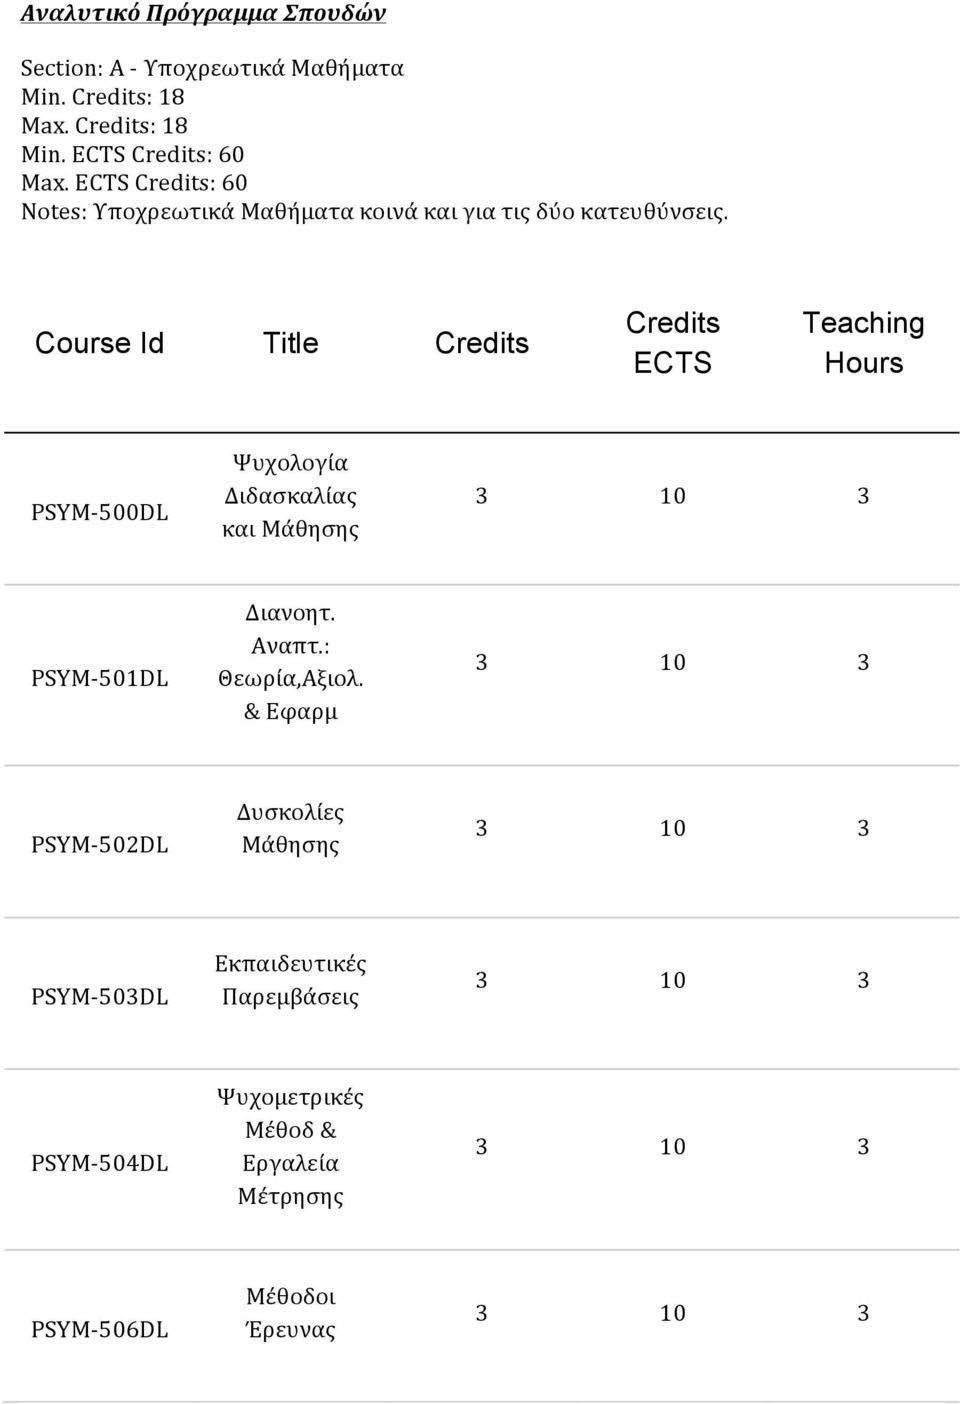 Course Id Title ECTS Teaching Hours 500DL Ψυχολογία Διδασκαλίας και Μάθησης 501DL Διανοητ. Αναπτ.